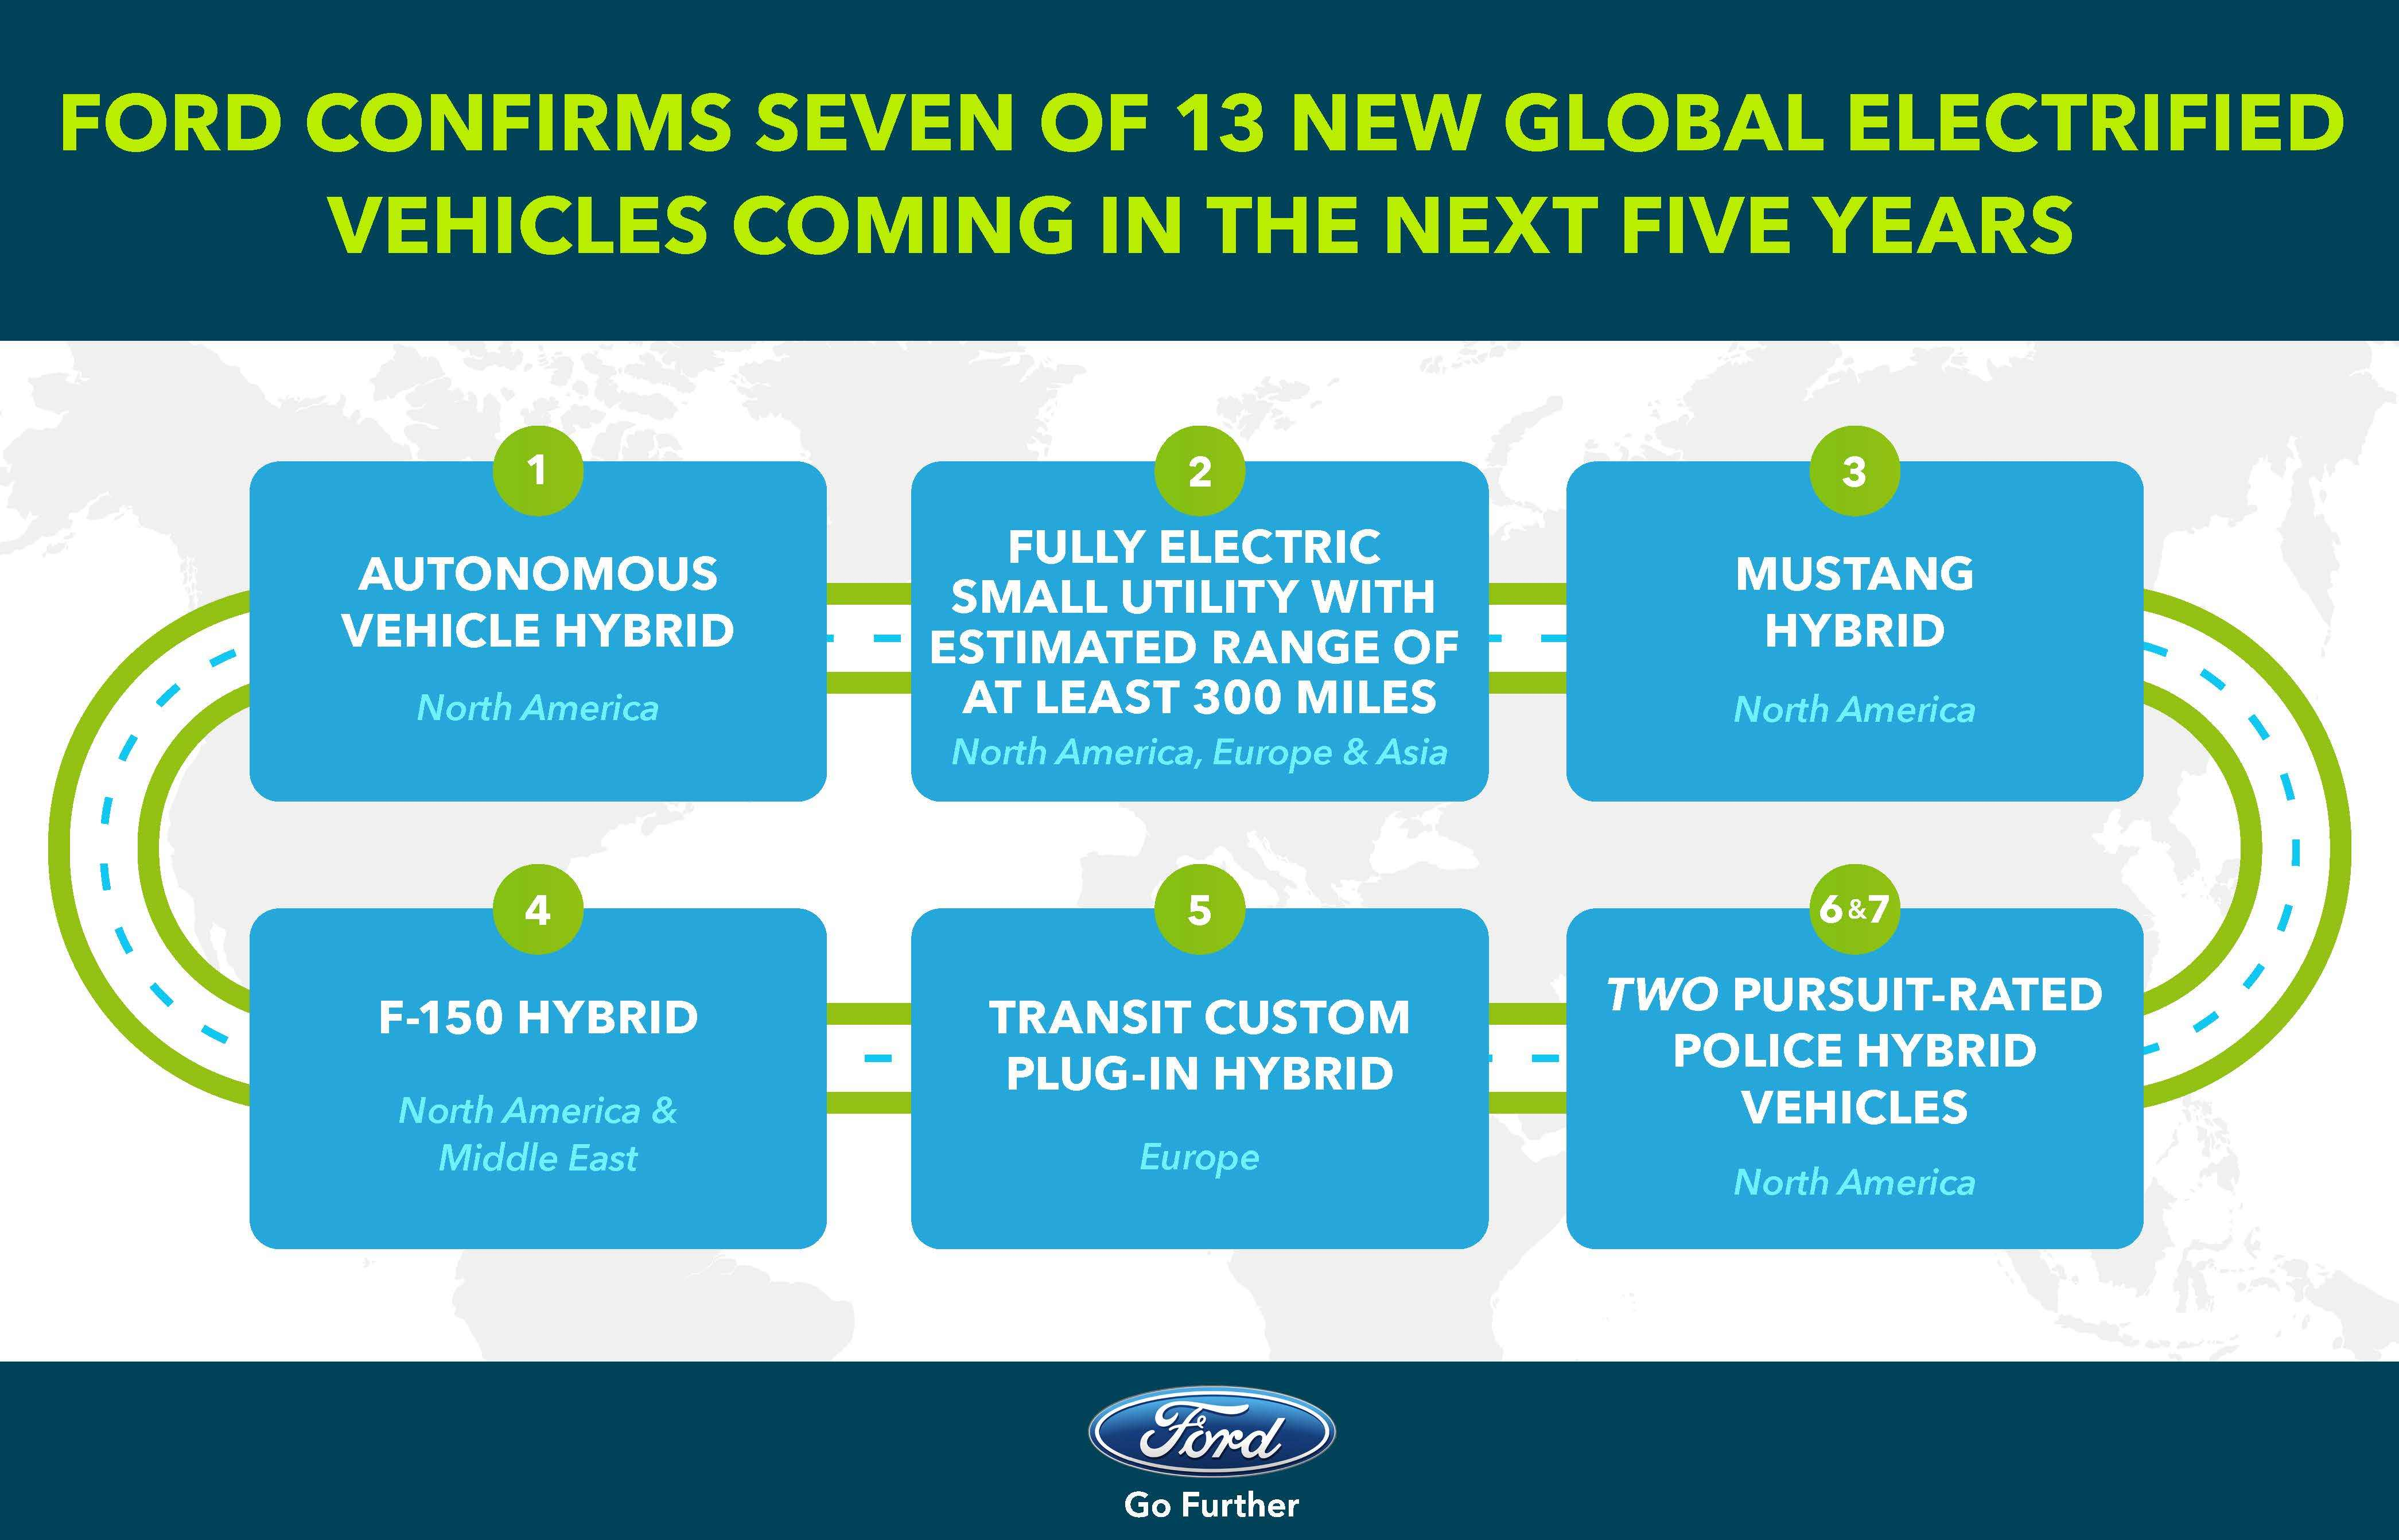 Seven of the 13 new global electrified vehicles Ford plans to introduce in the next five years includes hybrid versions of the iconic F-150 pickup and Mustang in the U.S., a plug-in hybrid Transit Custom van in Europe and a fully electric SUV with an expected range of at least 300 miles for customers globally. (Graphic: Business Wire)